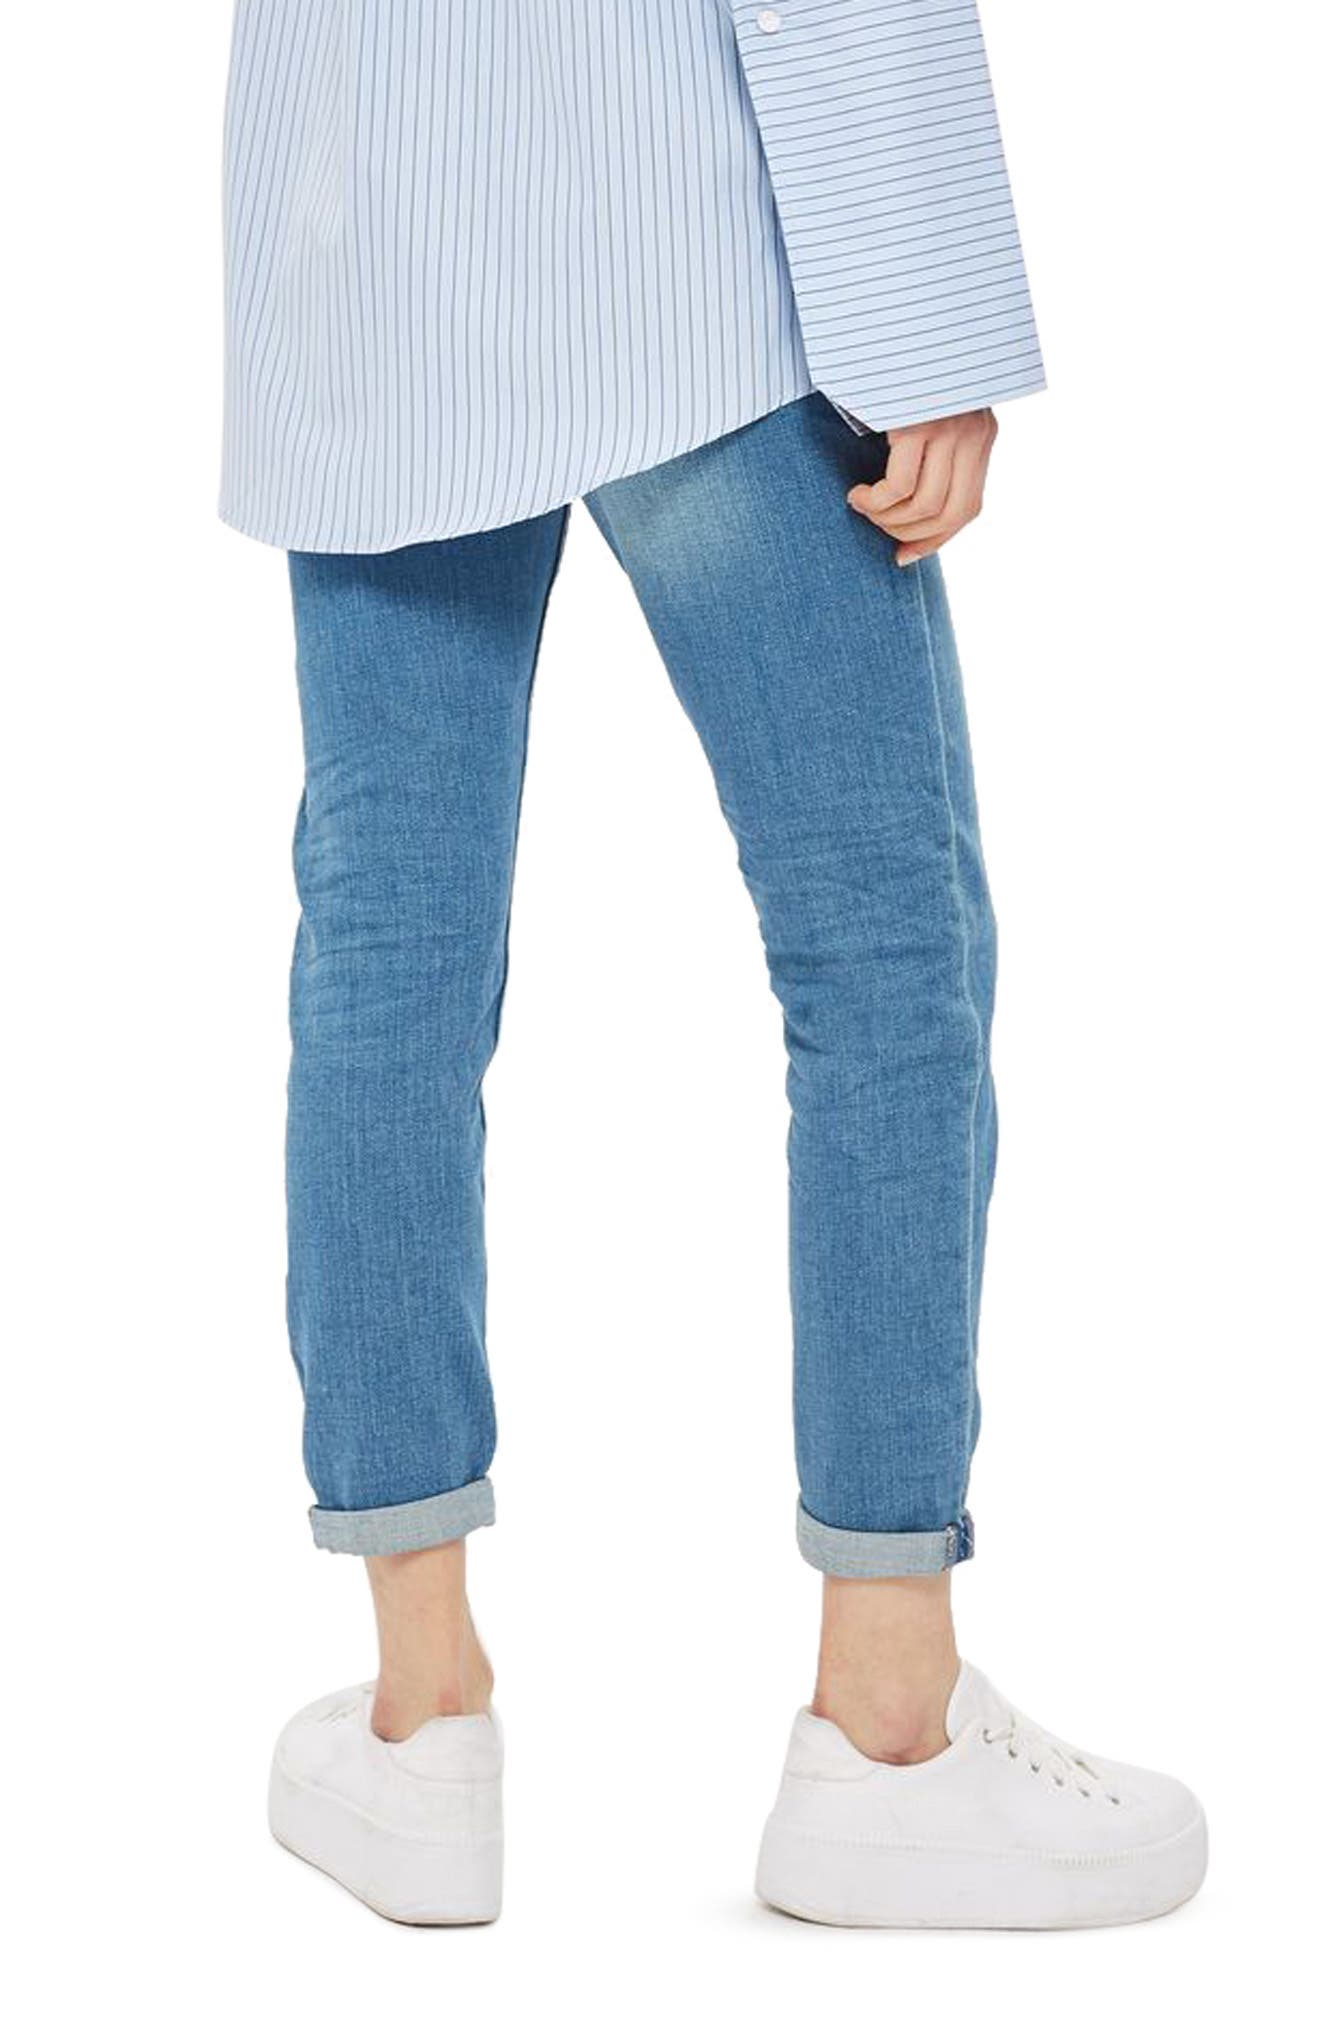 Lucas Boyfriend Jeans,                             Main thumbnail 1, color,                             400